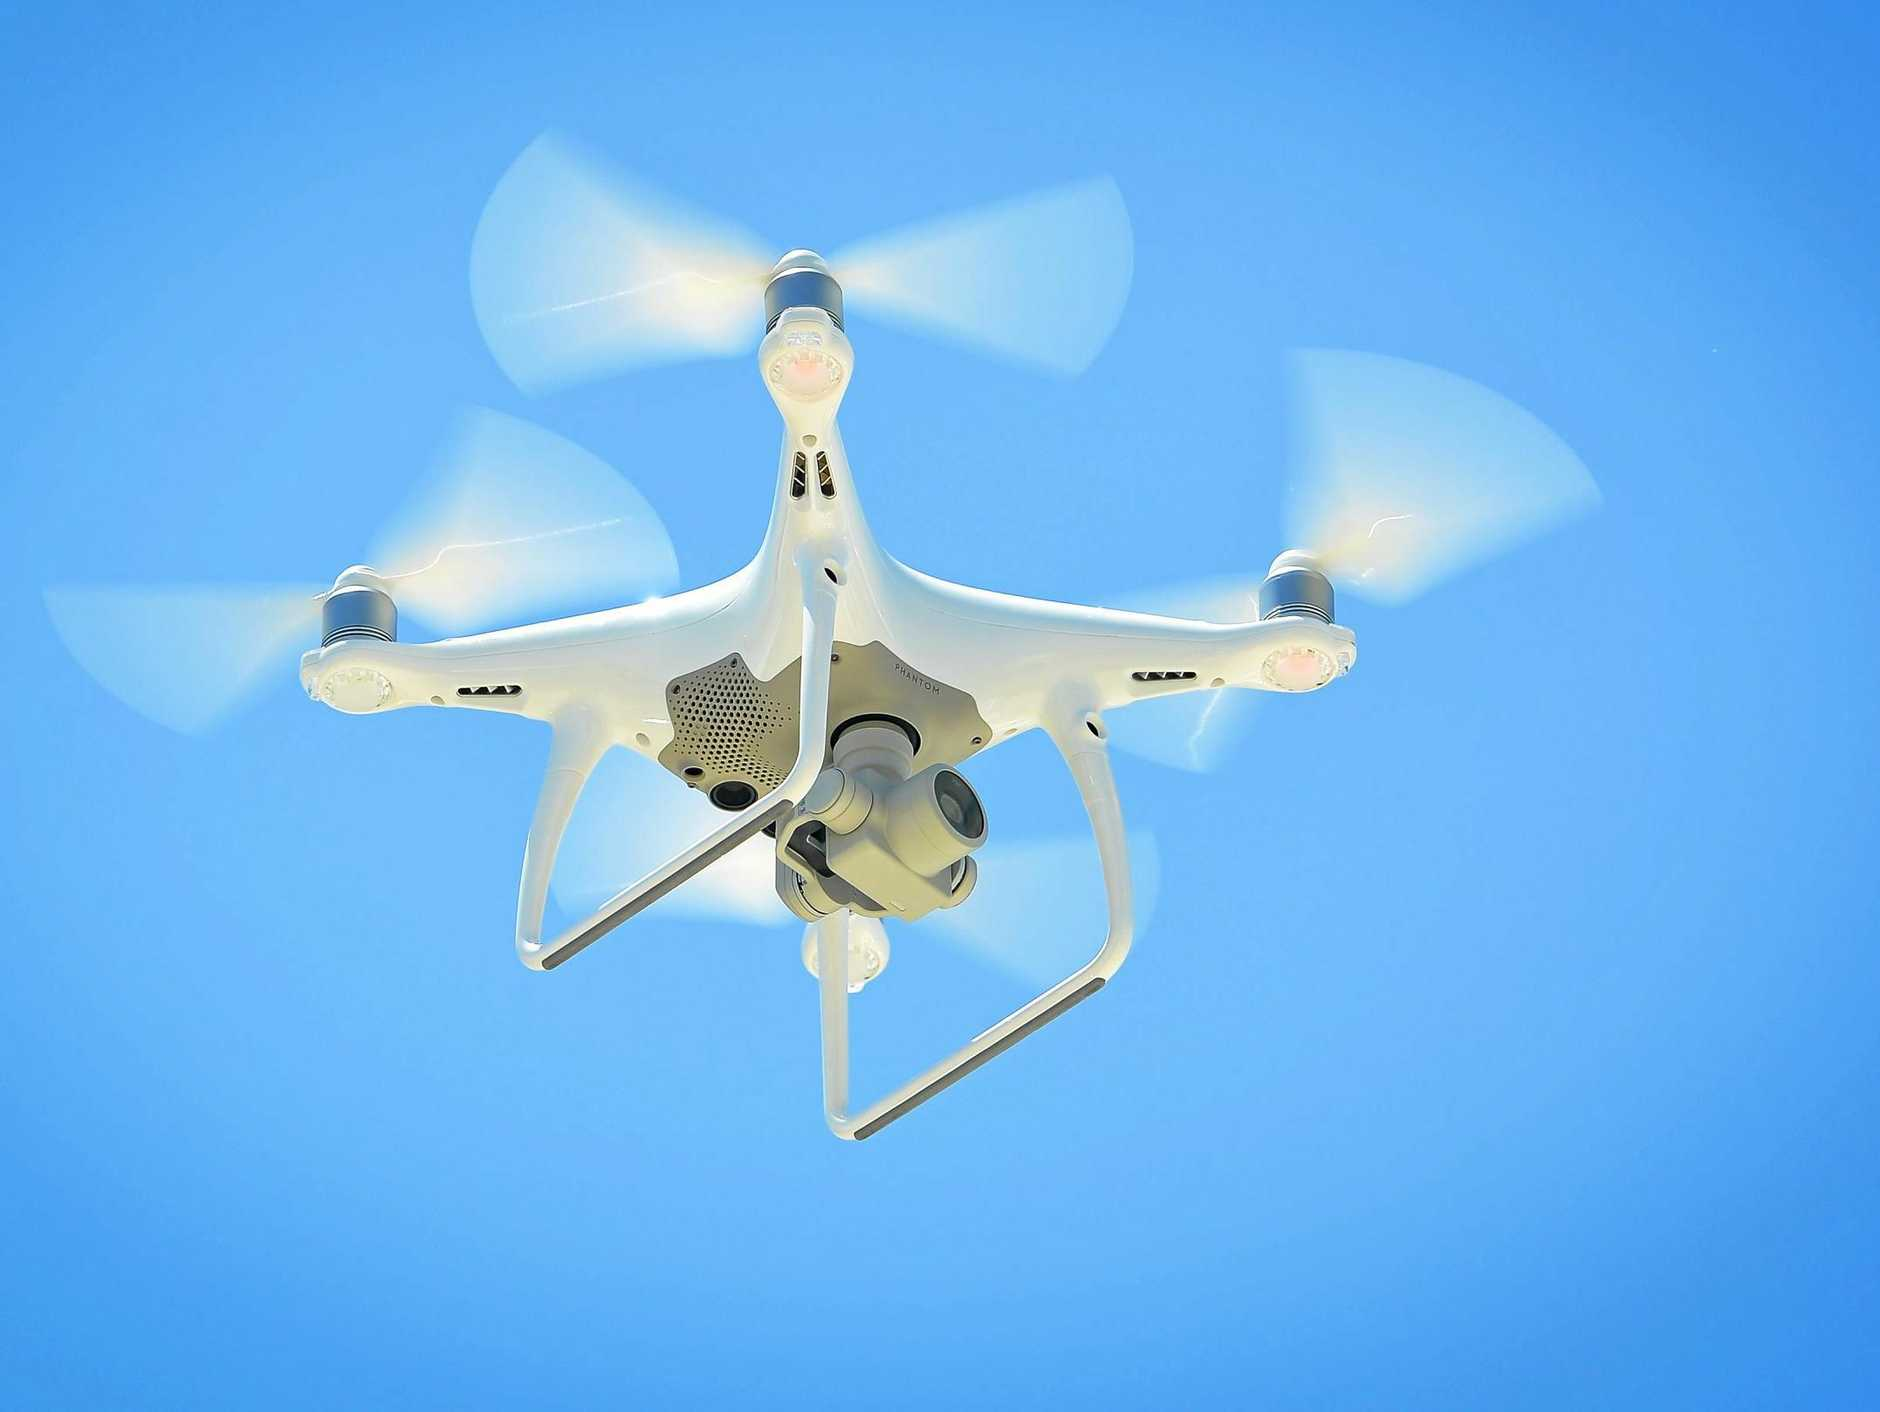 The Civil Aviation Safety Authority (CASA) recently unveiled a new registration and licences scheme for drones in Australia.